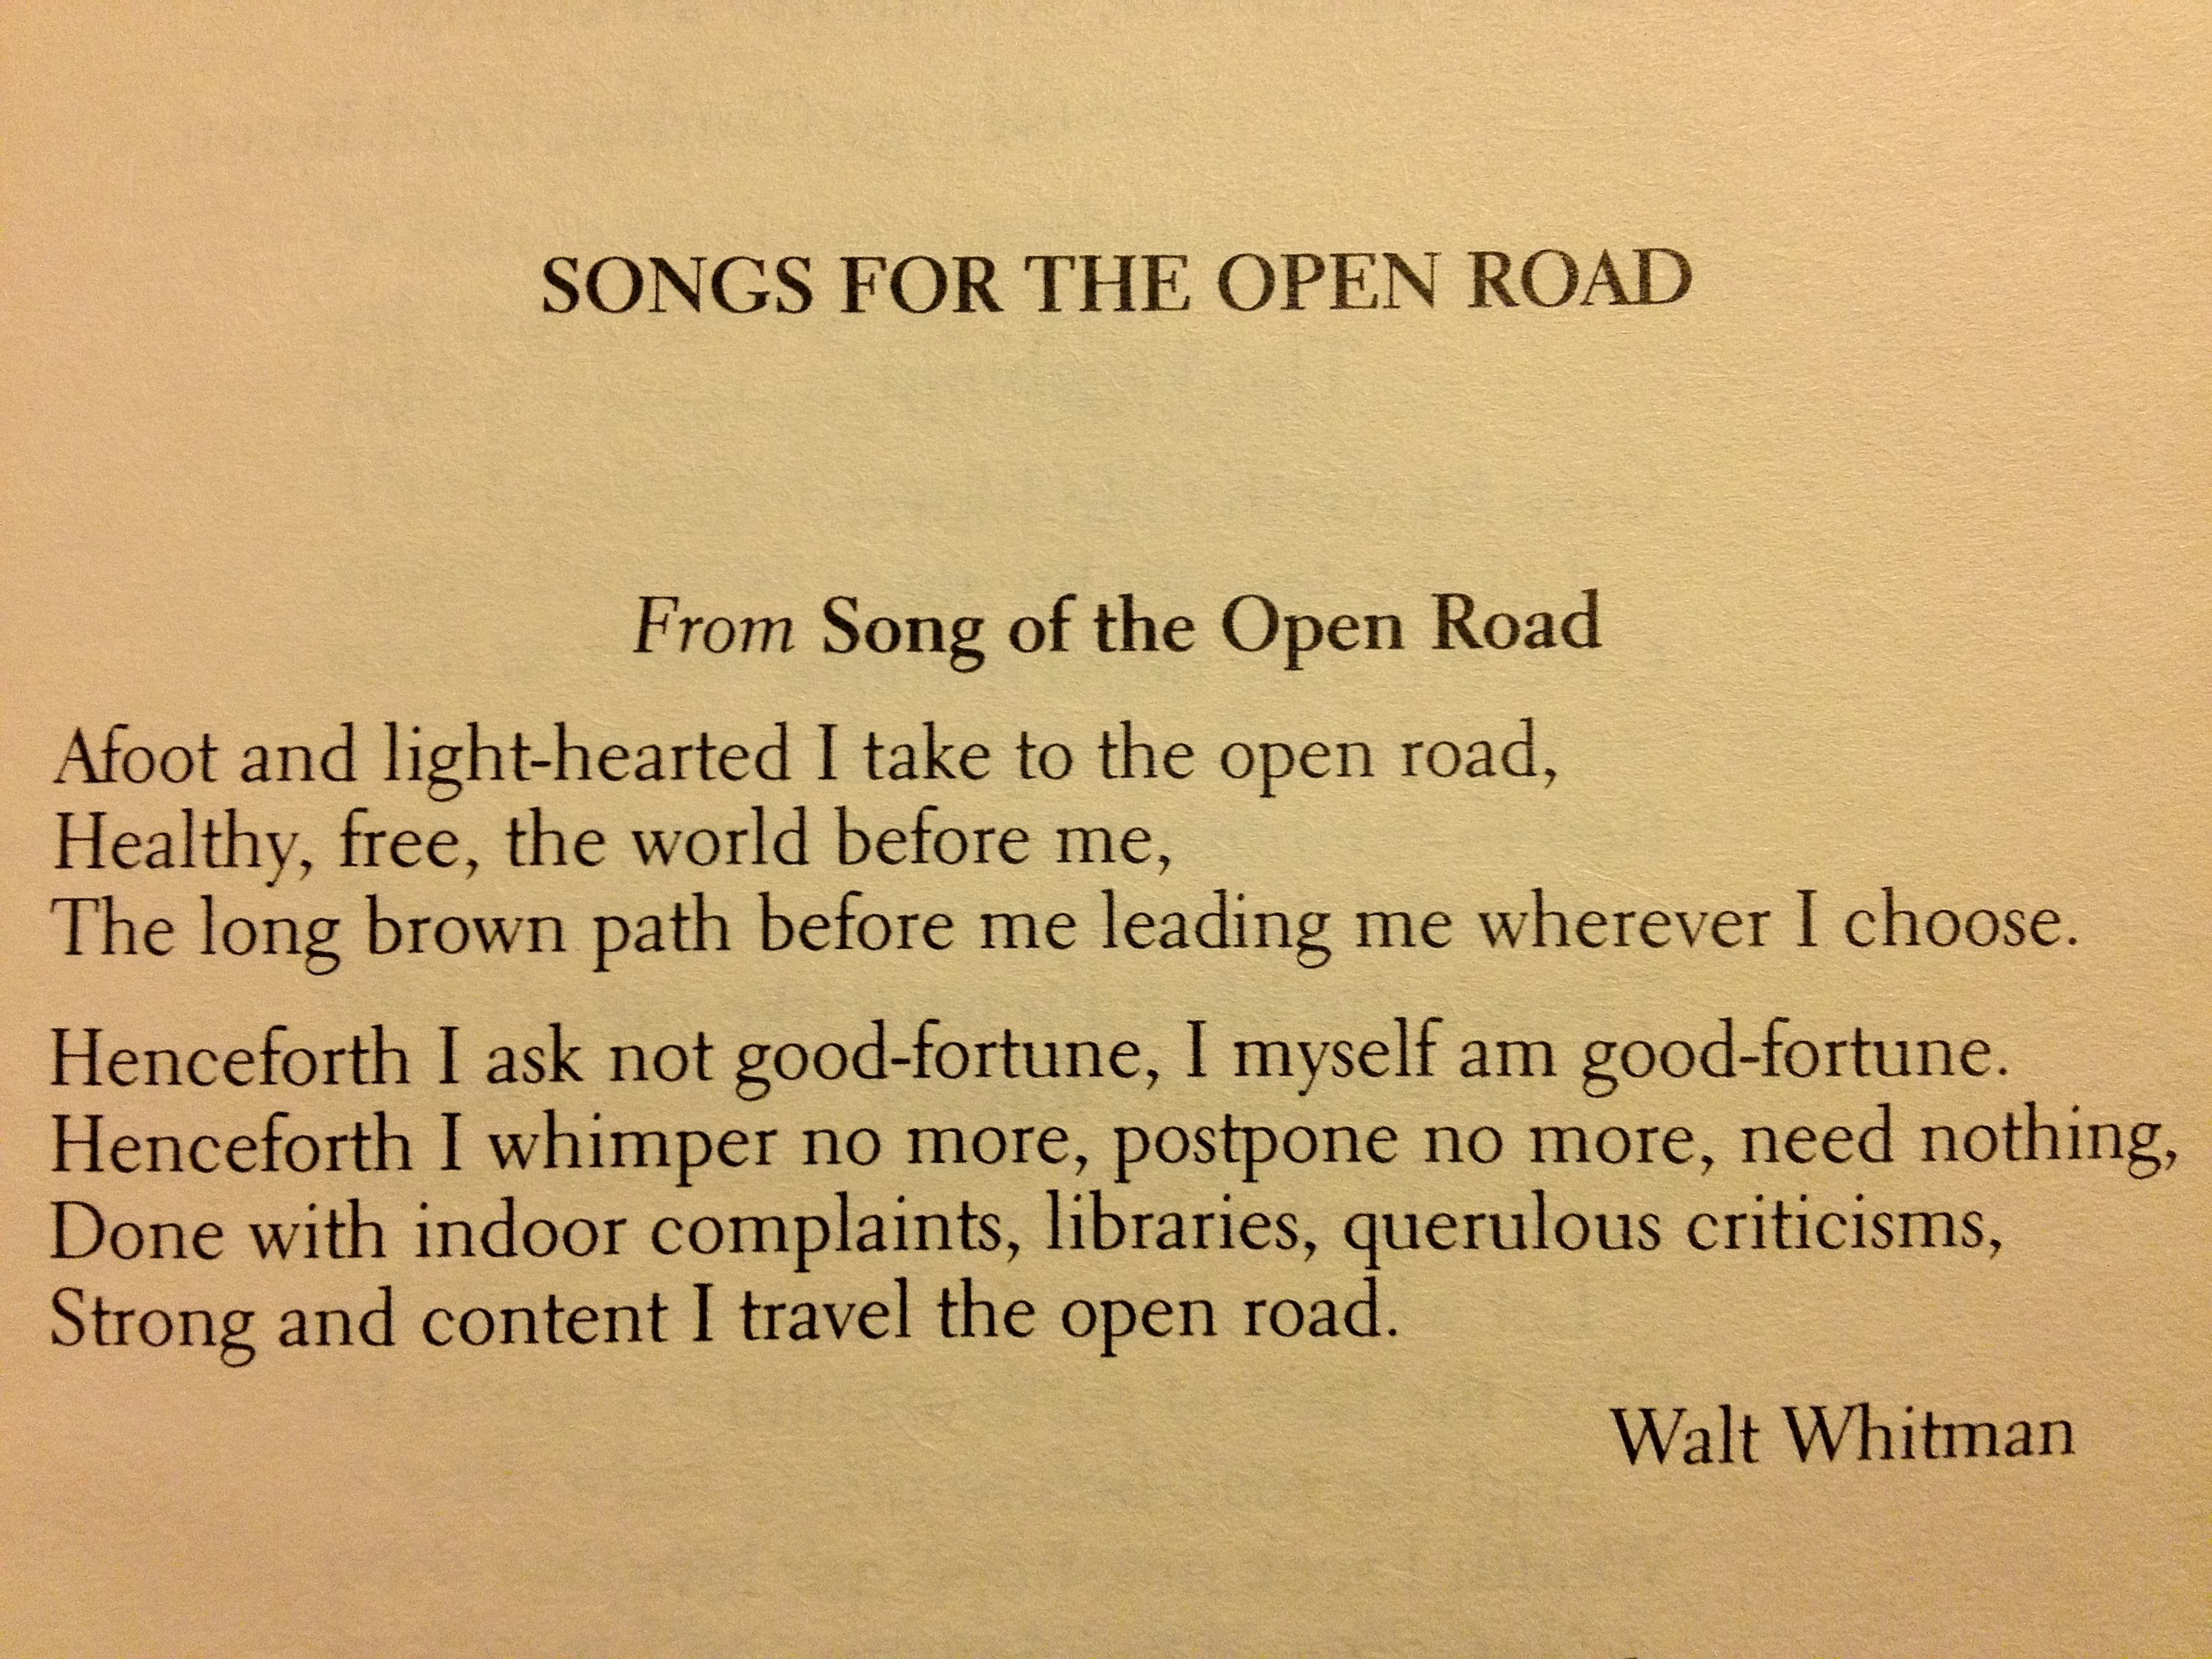 what is the poetic structure of song of the open road??